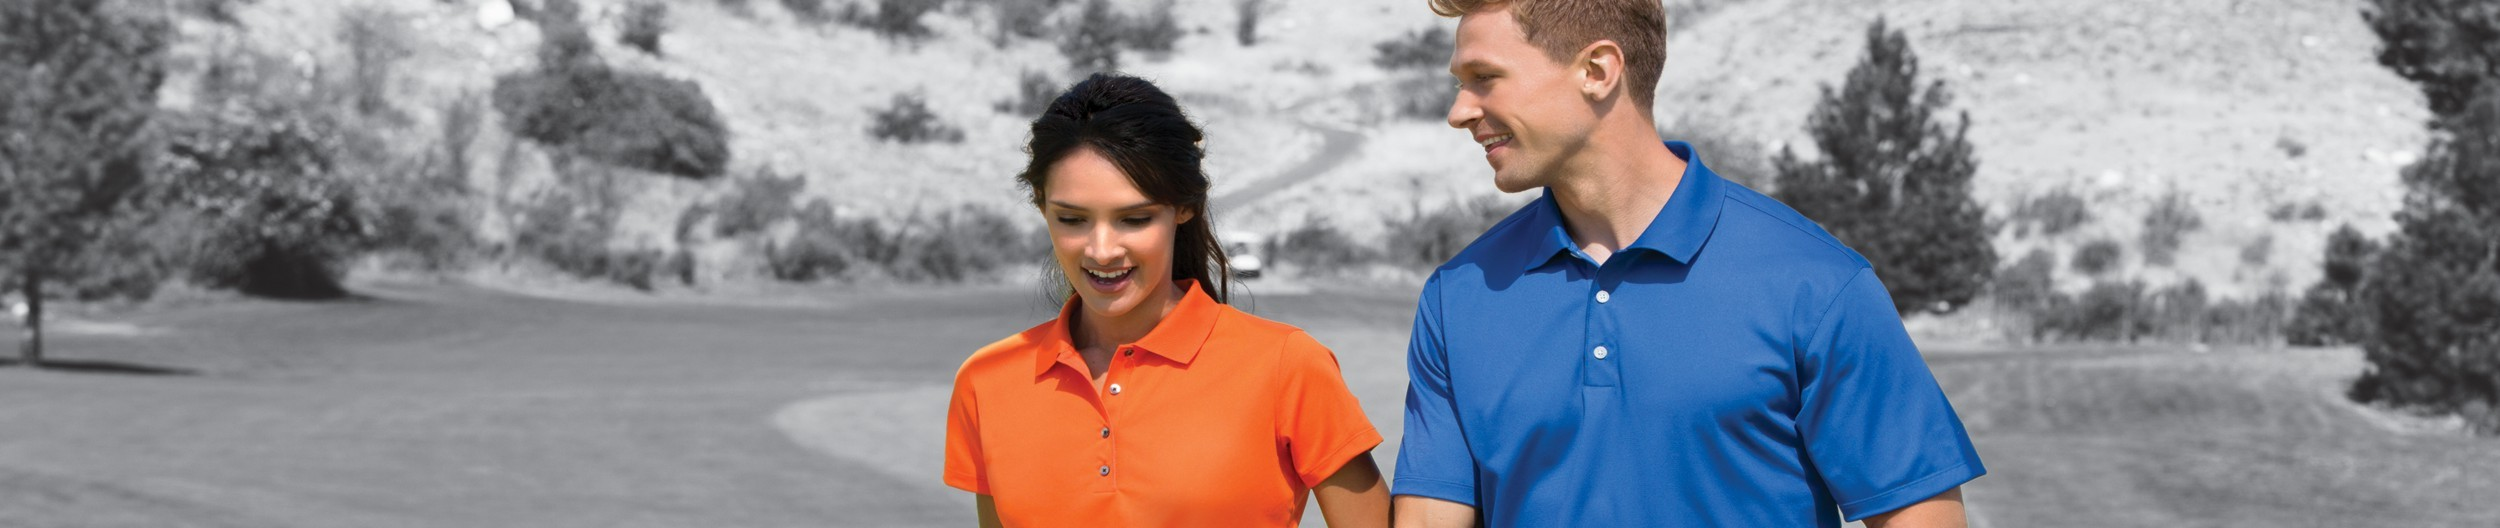 corporate wear medford oregon